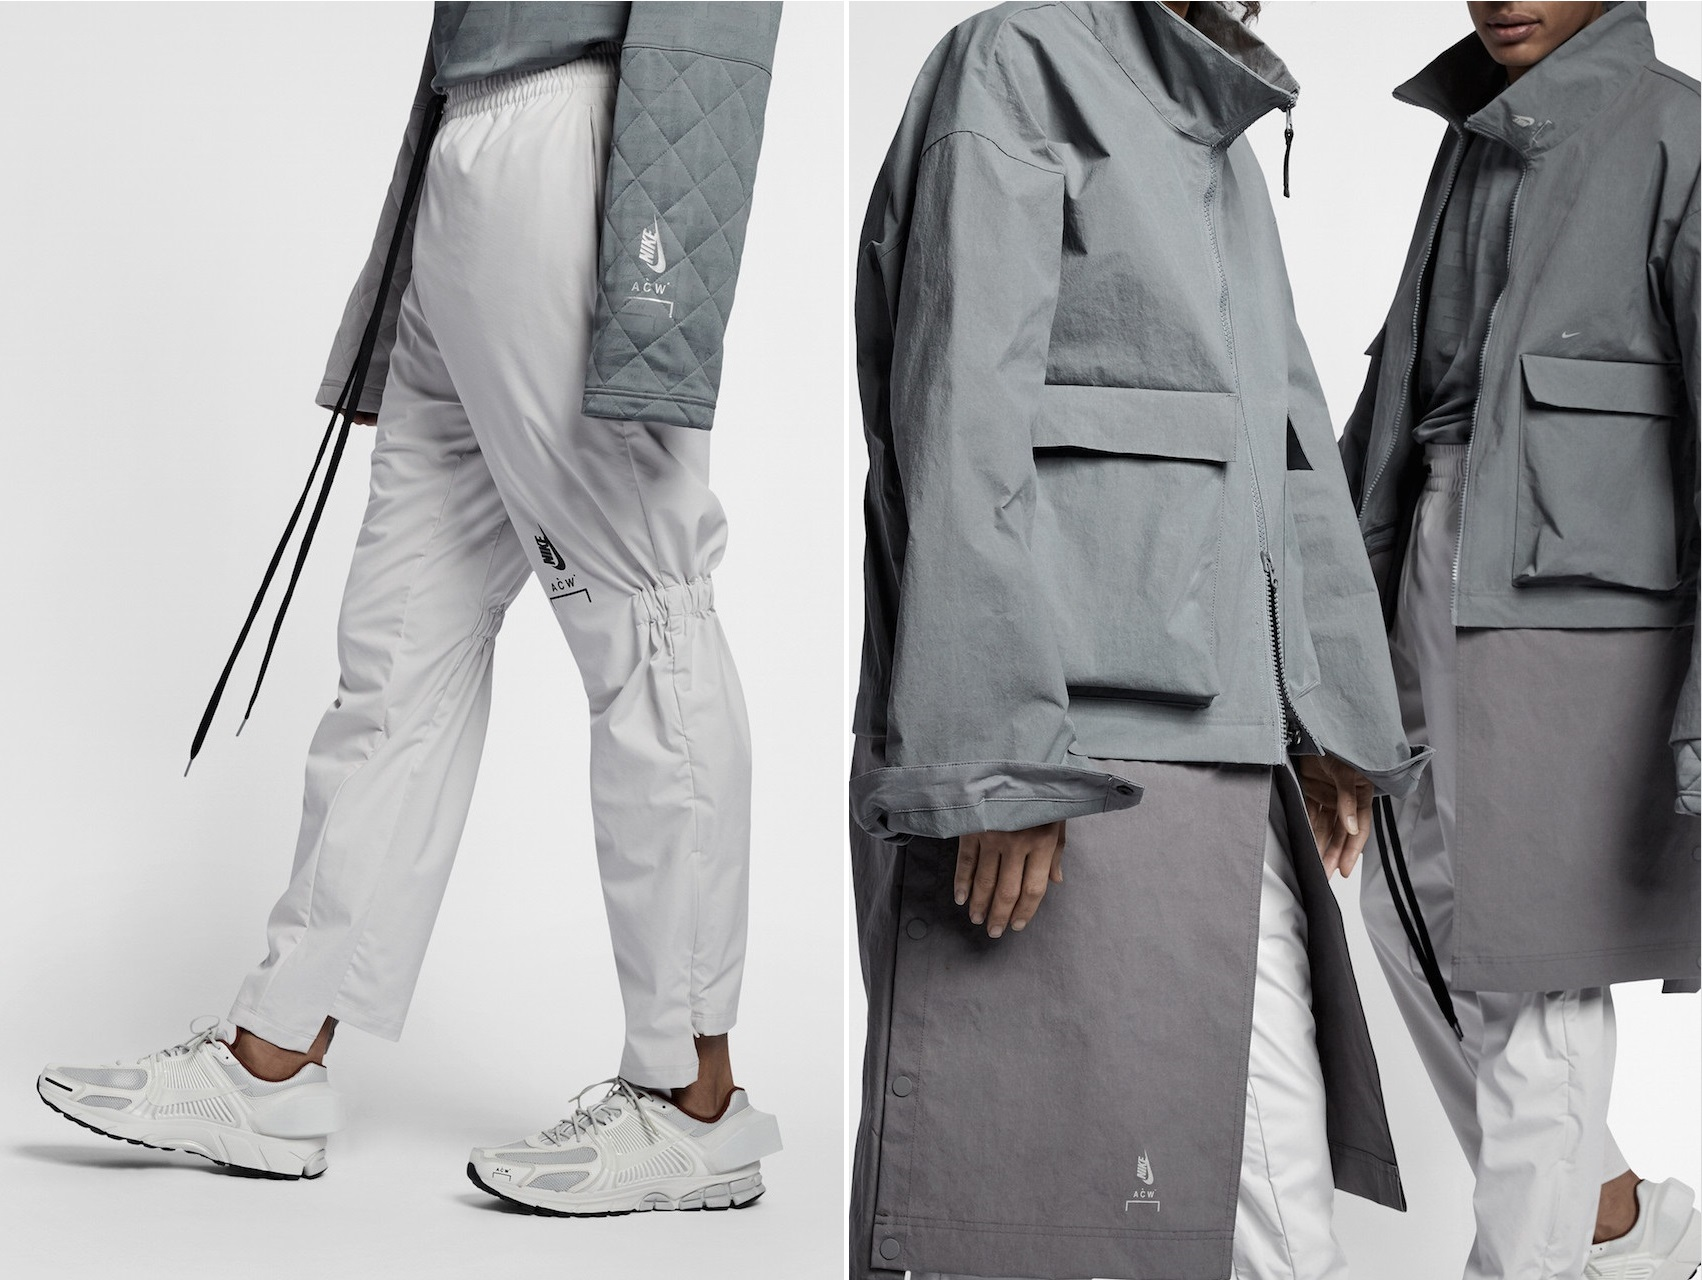 Samuel Ross Reveals Imagery of the A-COLD-WALL* x Nike Collaboration